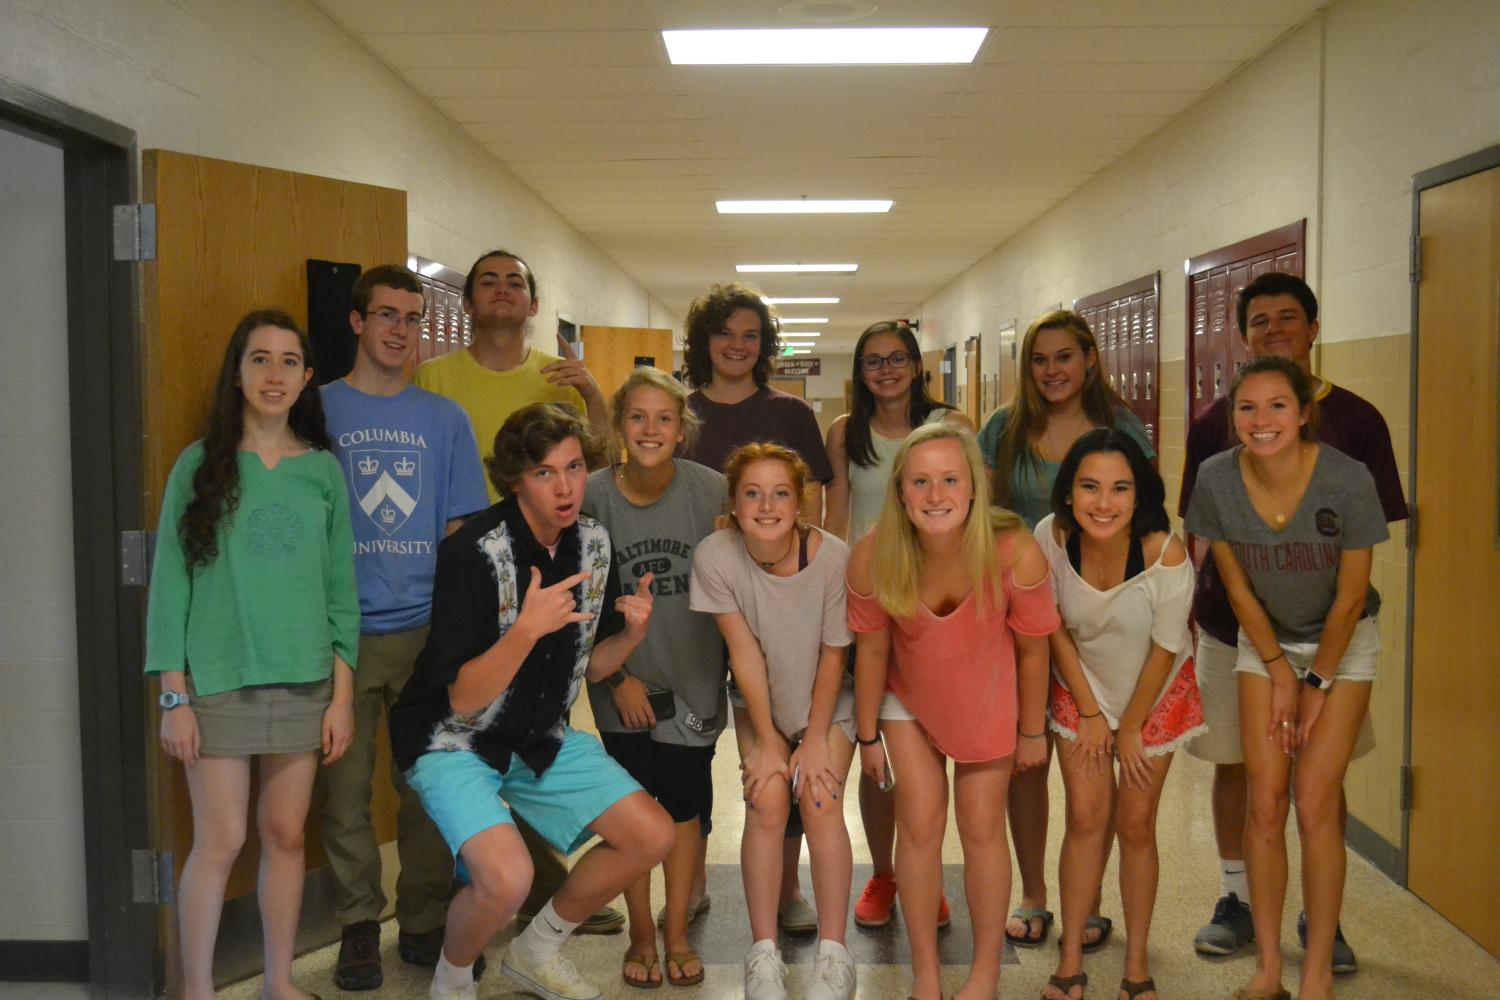 Seniors+are+ready+for+graduation.+They+have+been+waiting+for+their+last+day+for+months.